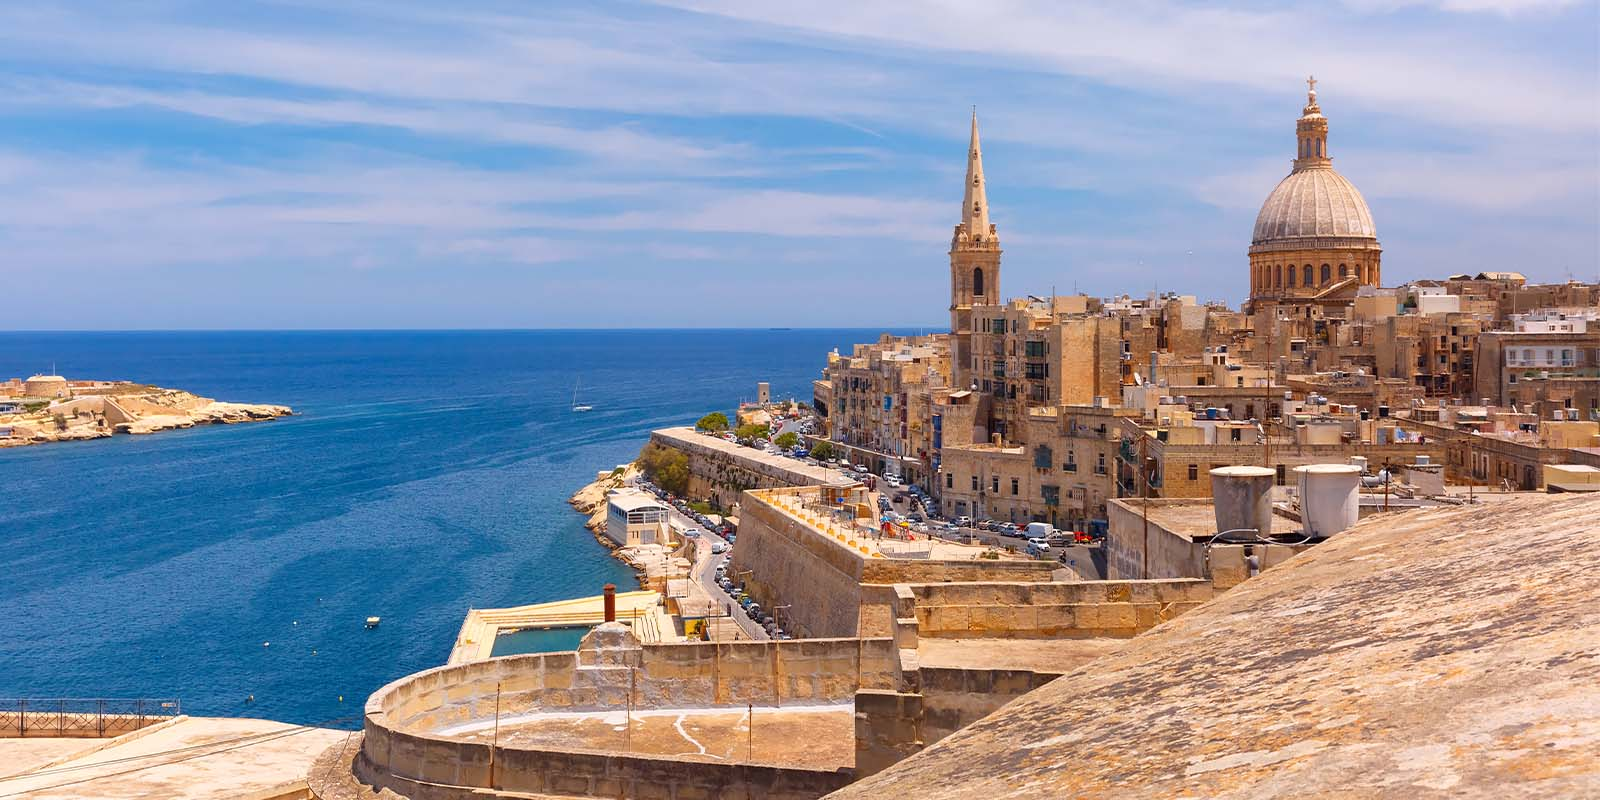 EU residency can be attained in Malta starting from €100,000.